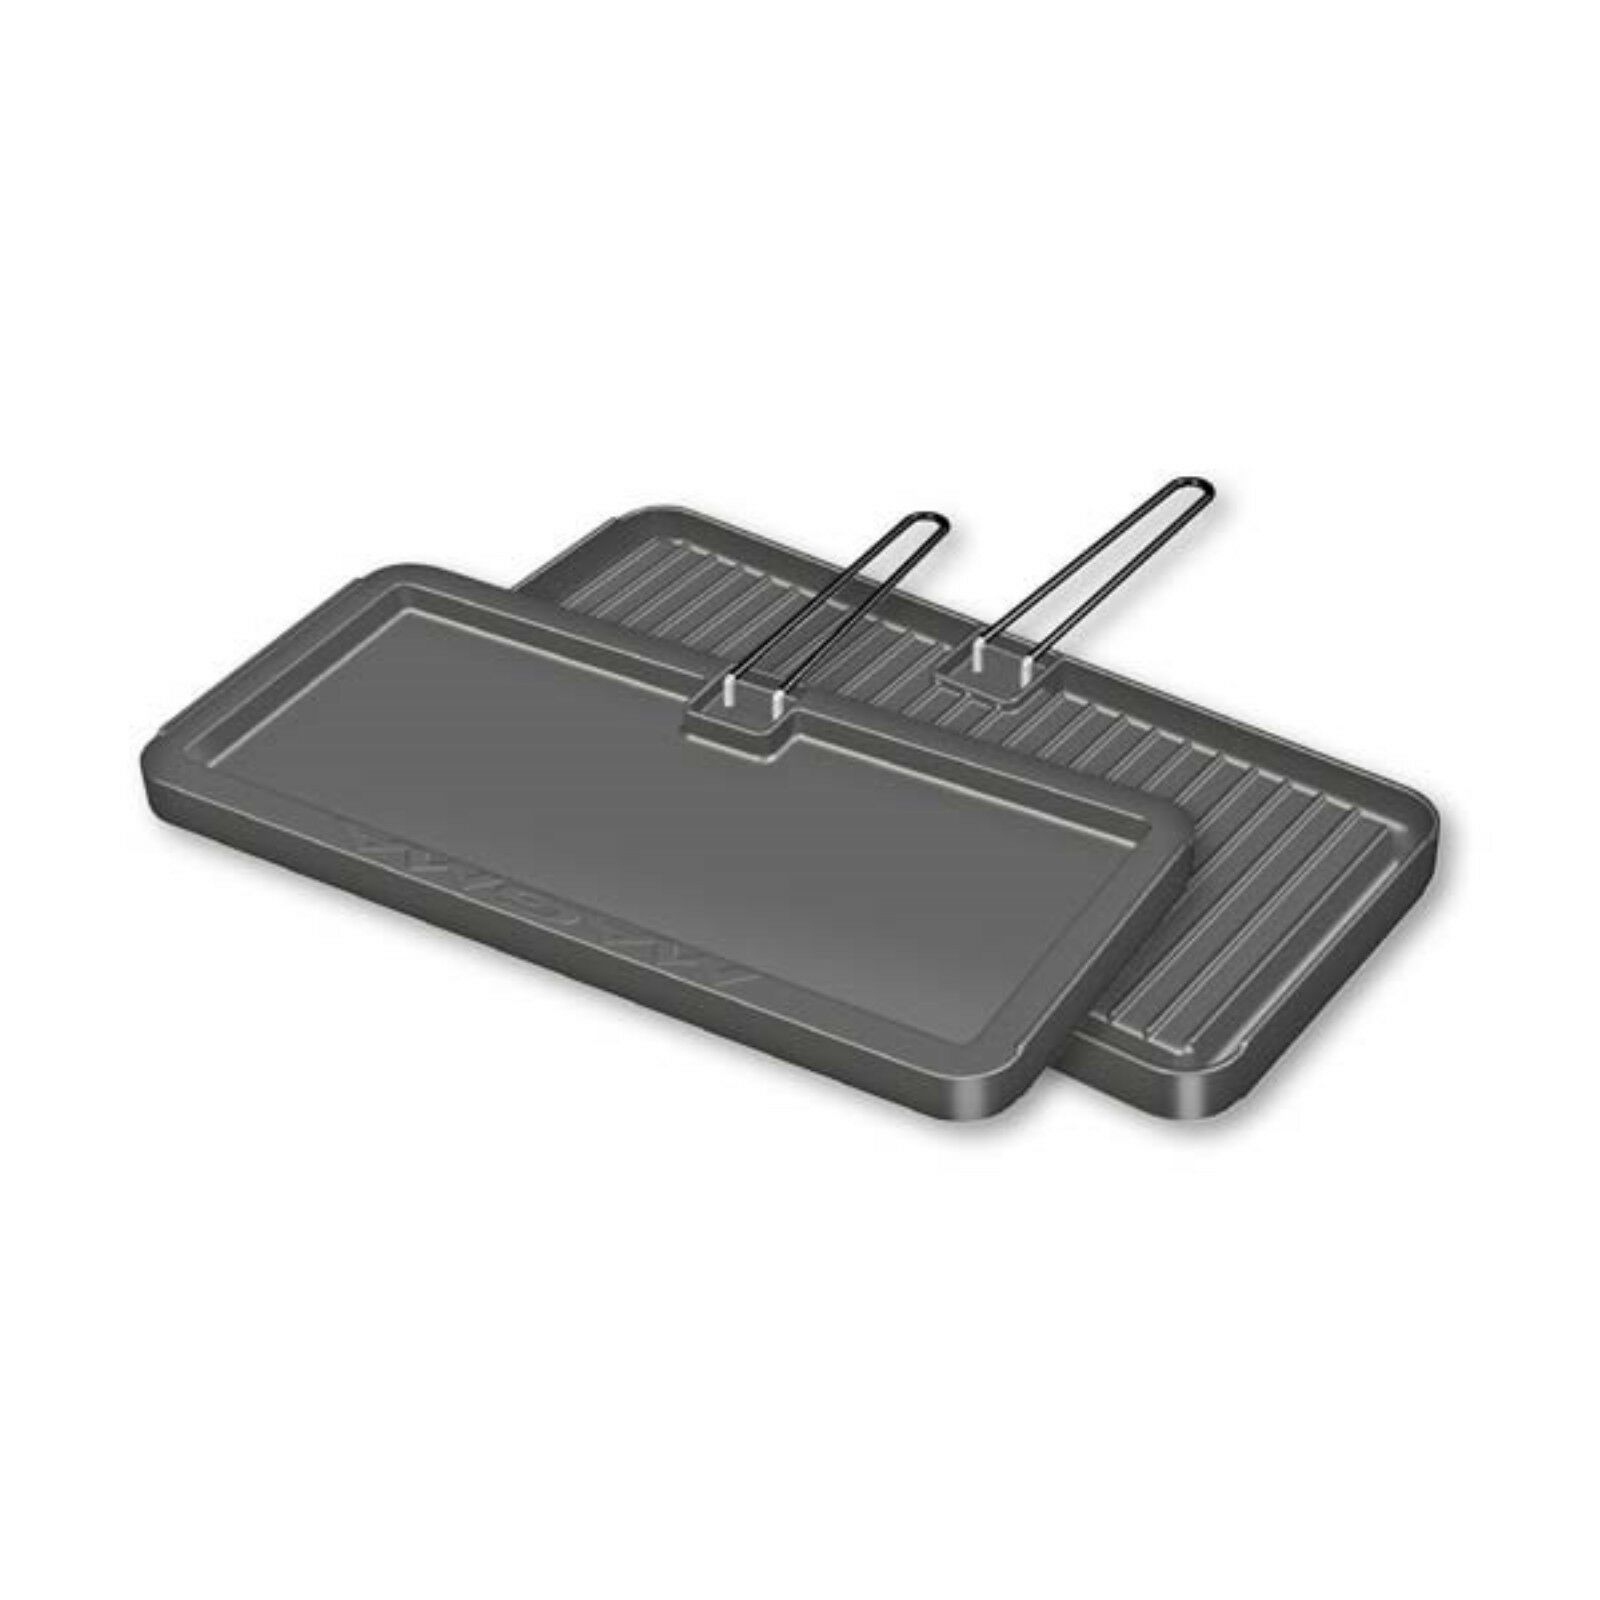 Magma Grills A10-197 Griddle 11 X17